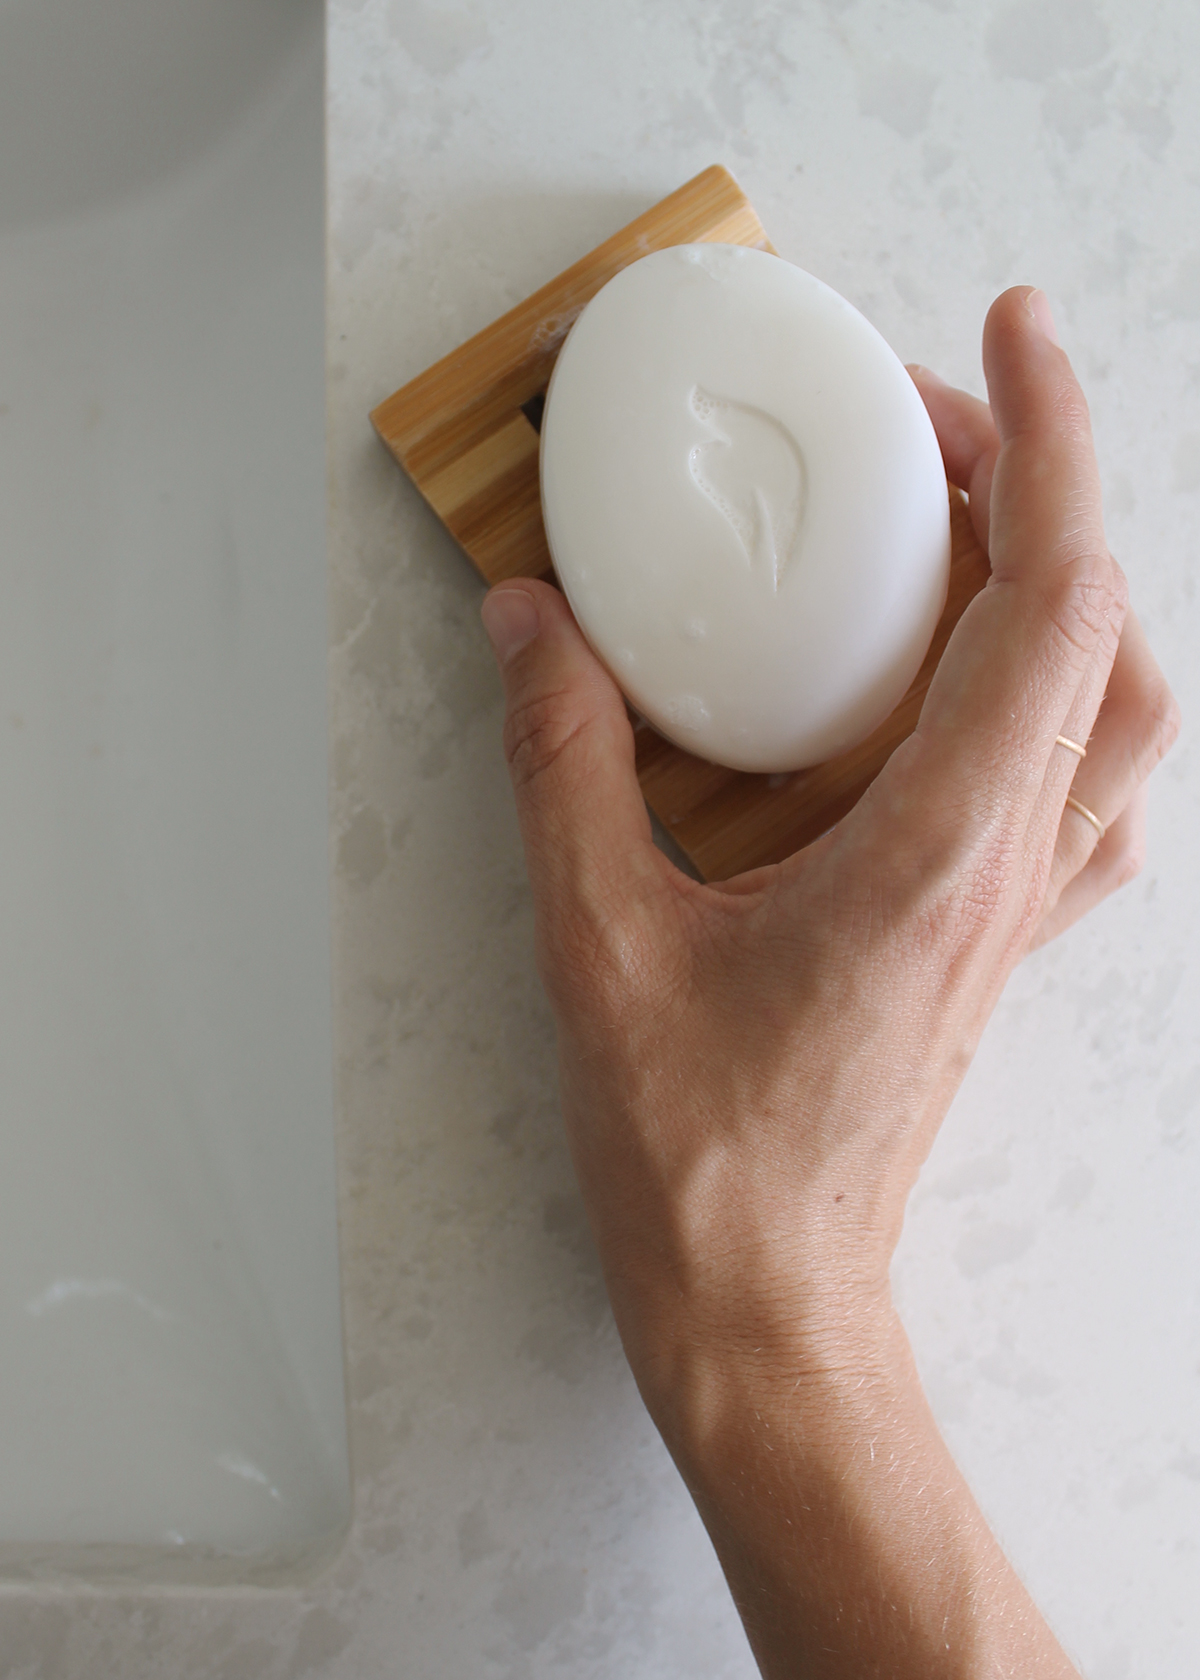 Does soap expire? Why expiration dates can be misleading!